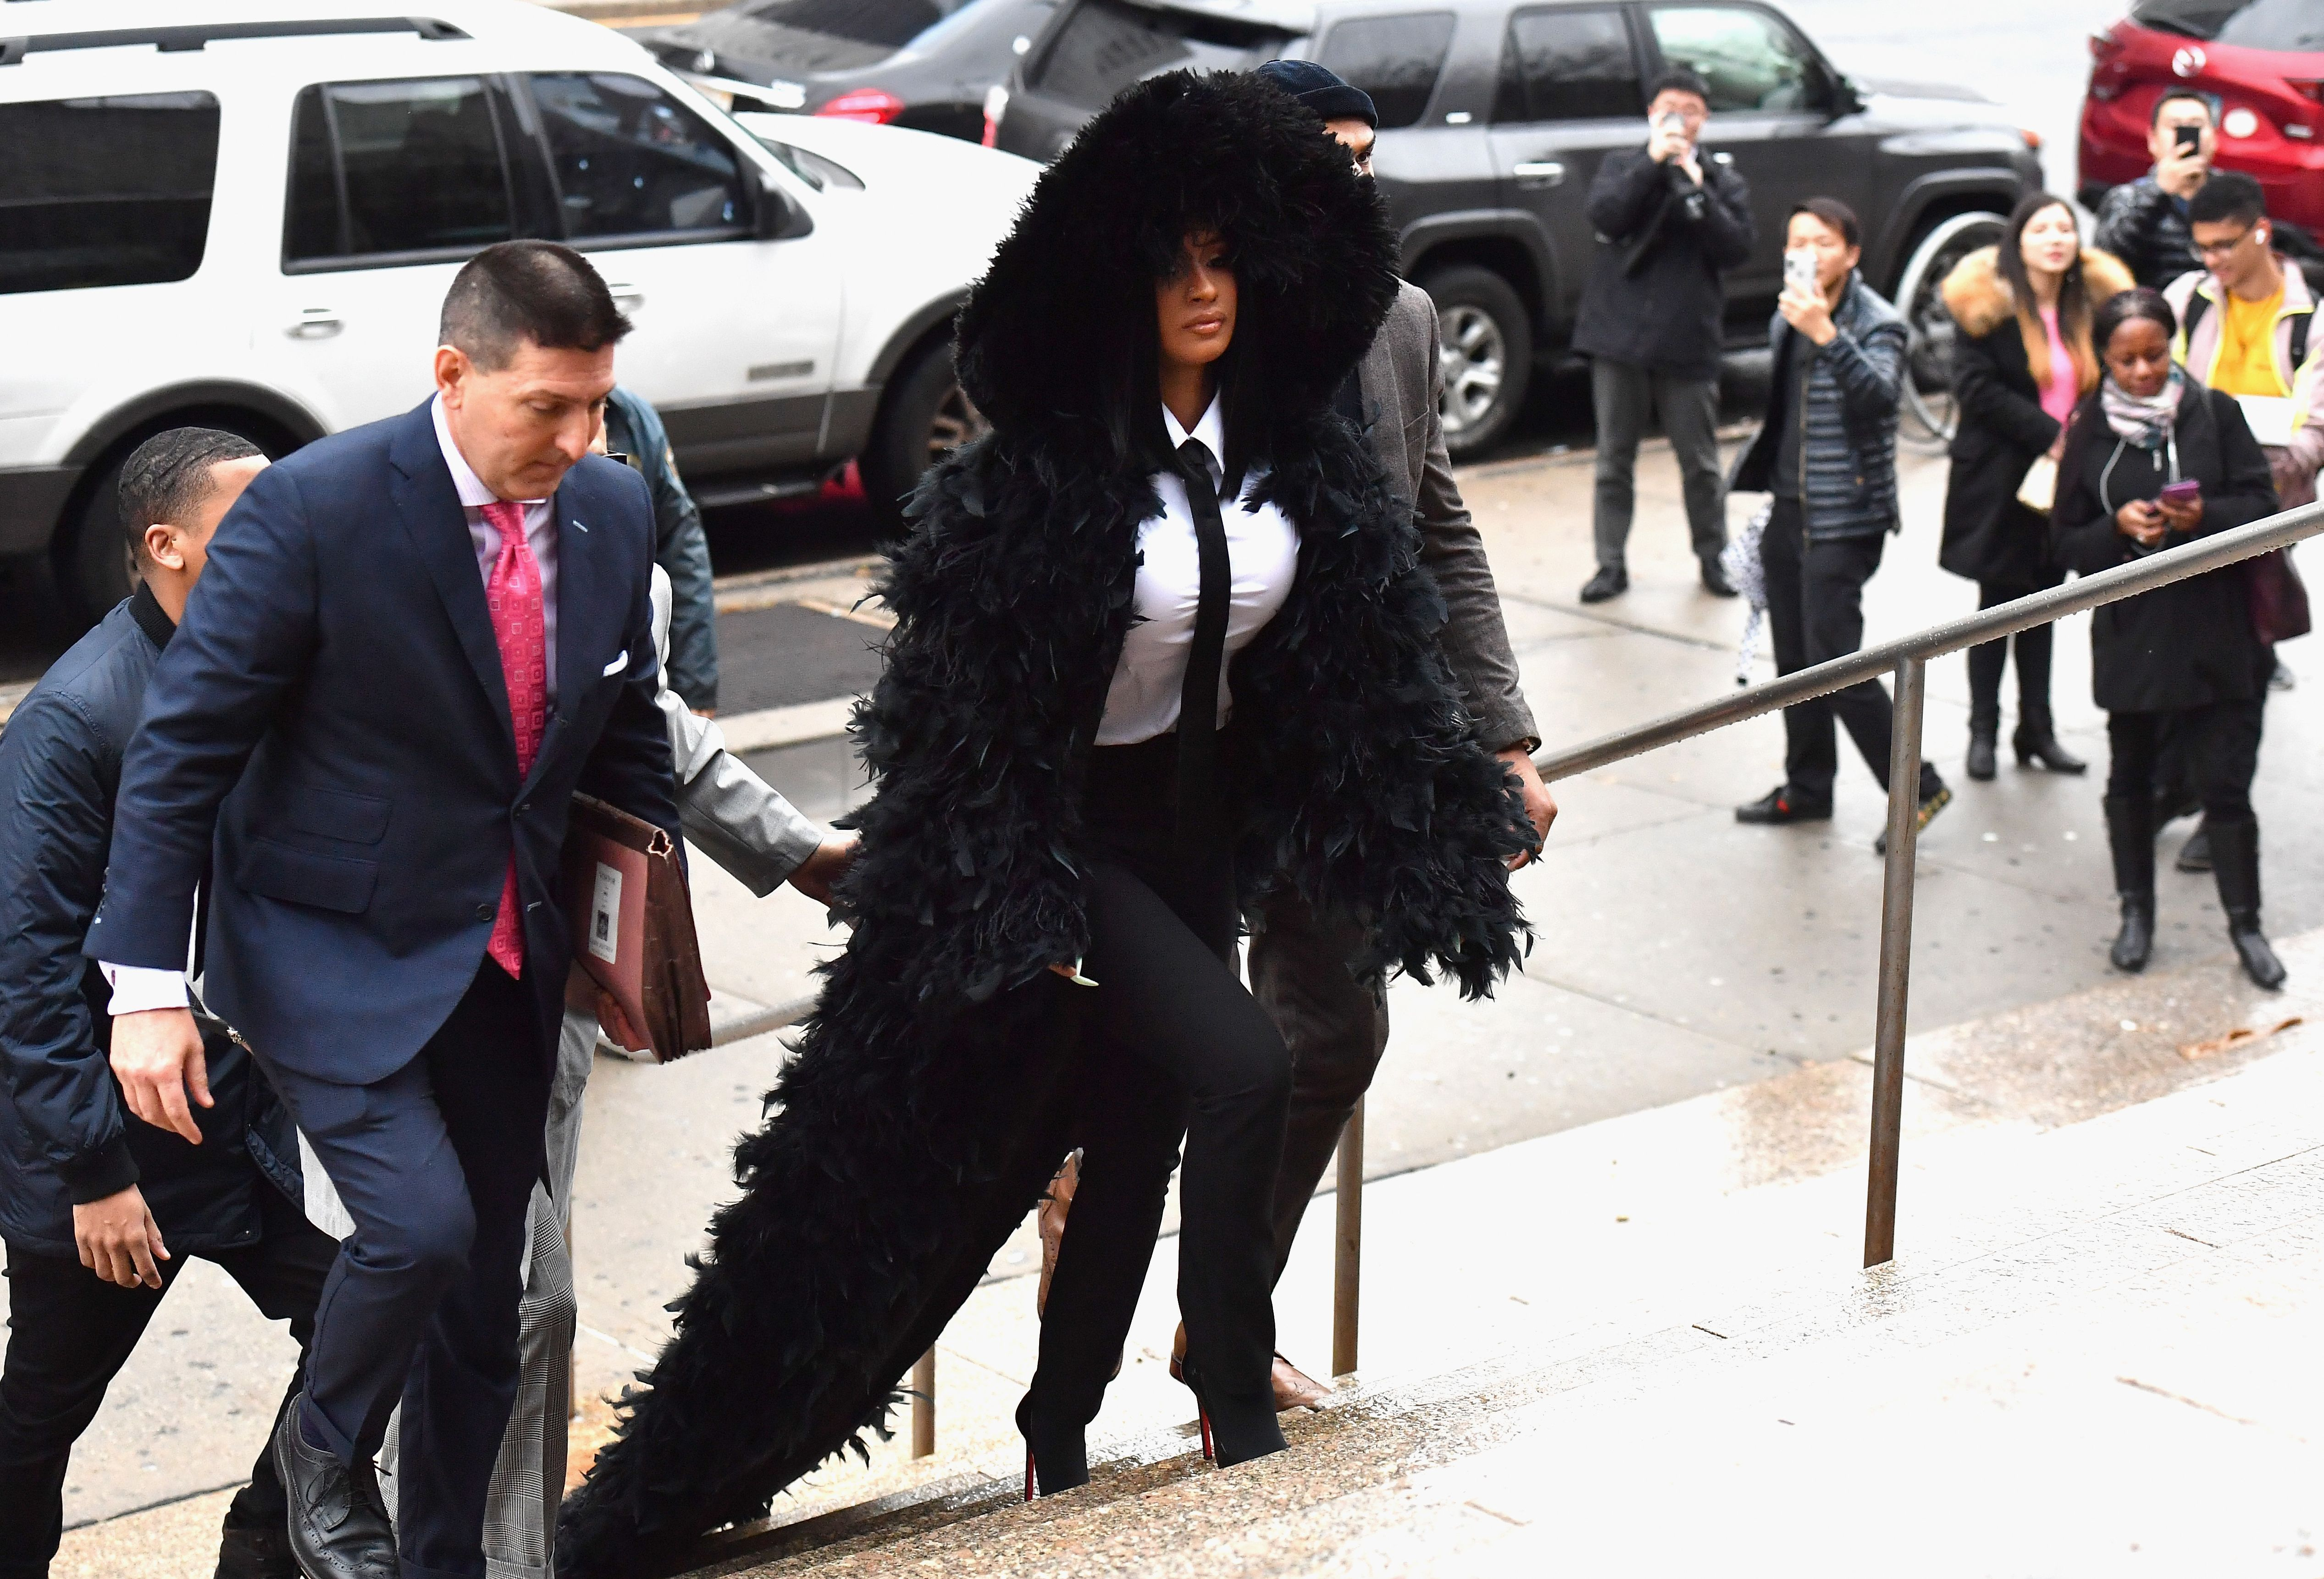 Cardi B. Showed Up to Court In a Feather-Laden Black Coat With a Train